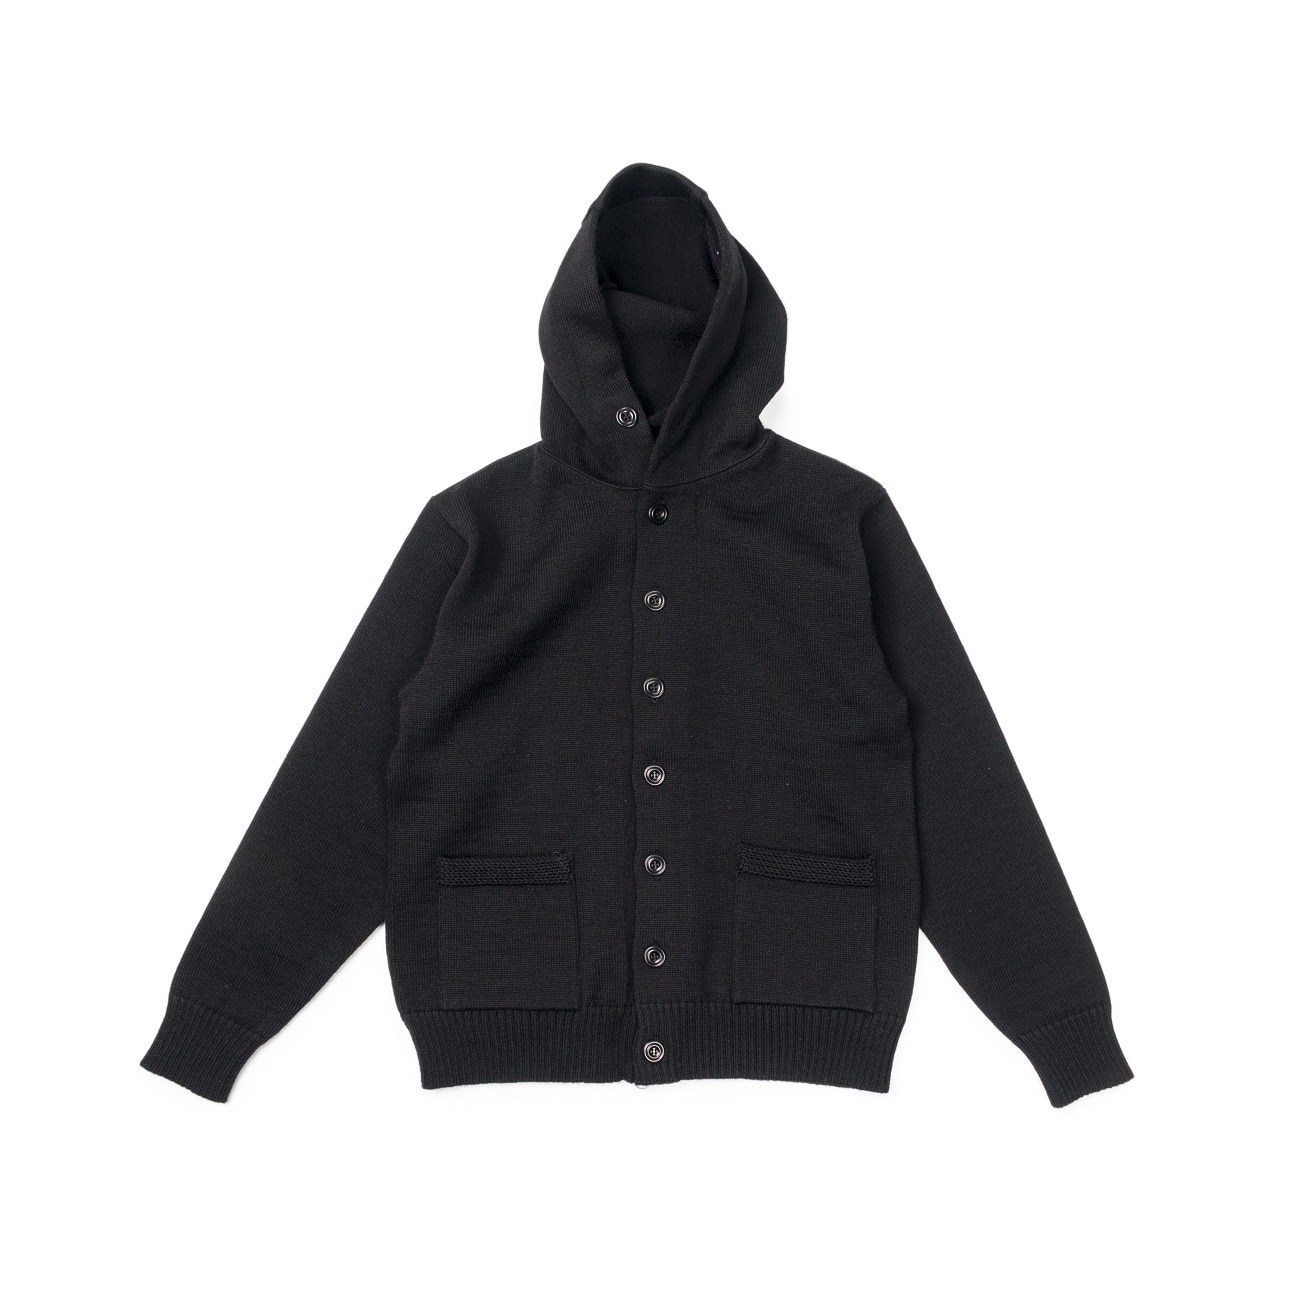 30S Hooded Athletic Sweater